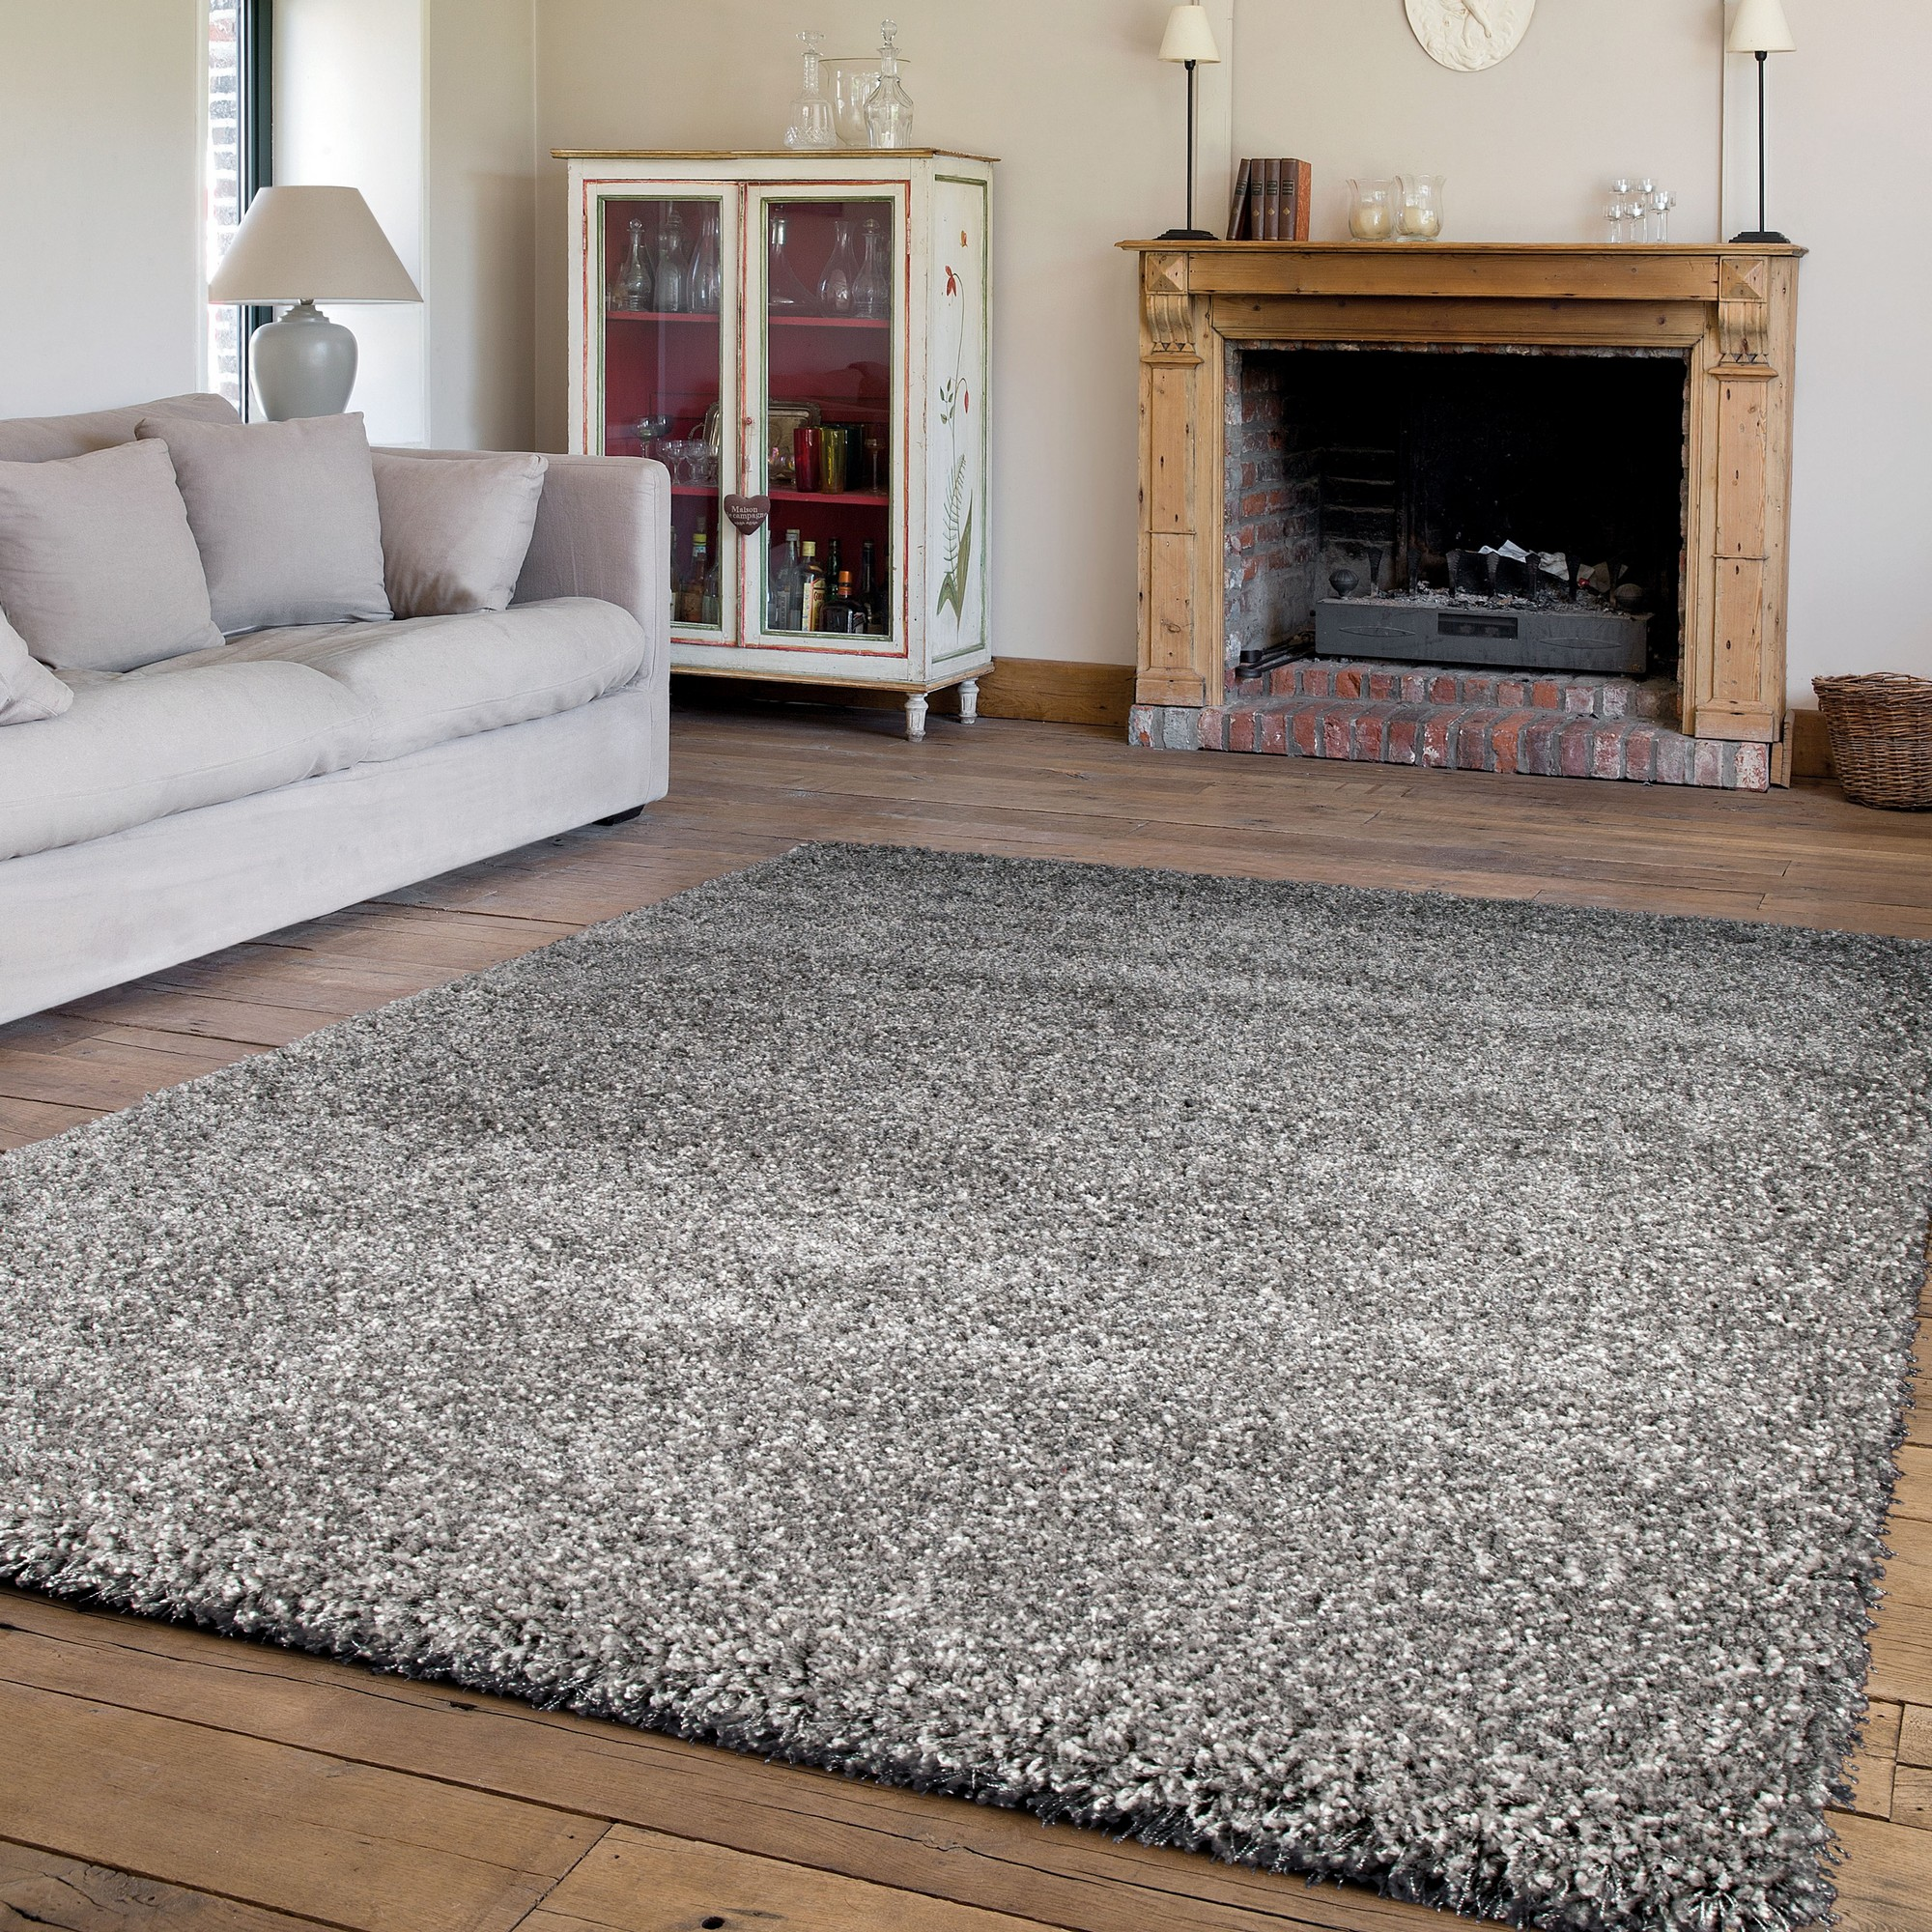 Twilight Rugs 39001 9999 Silver Shaggy